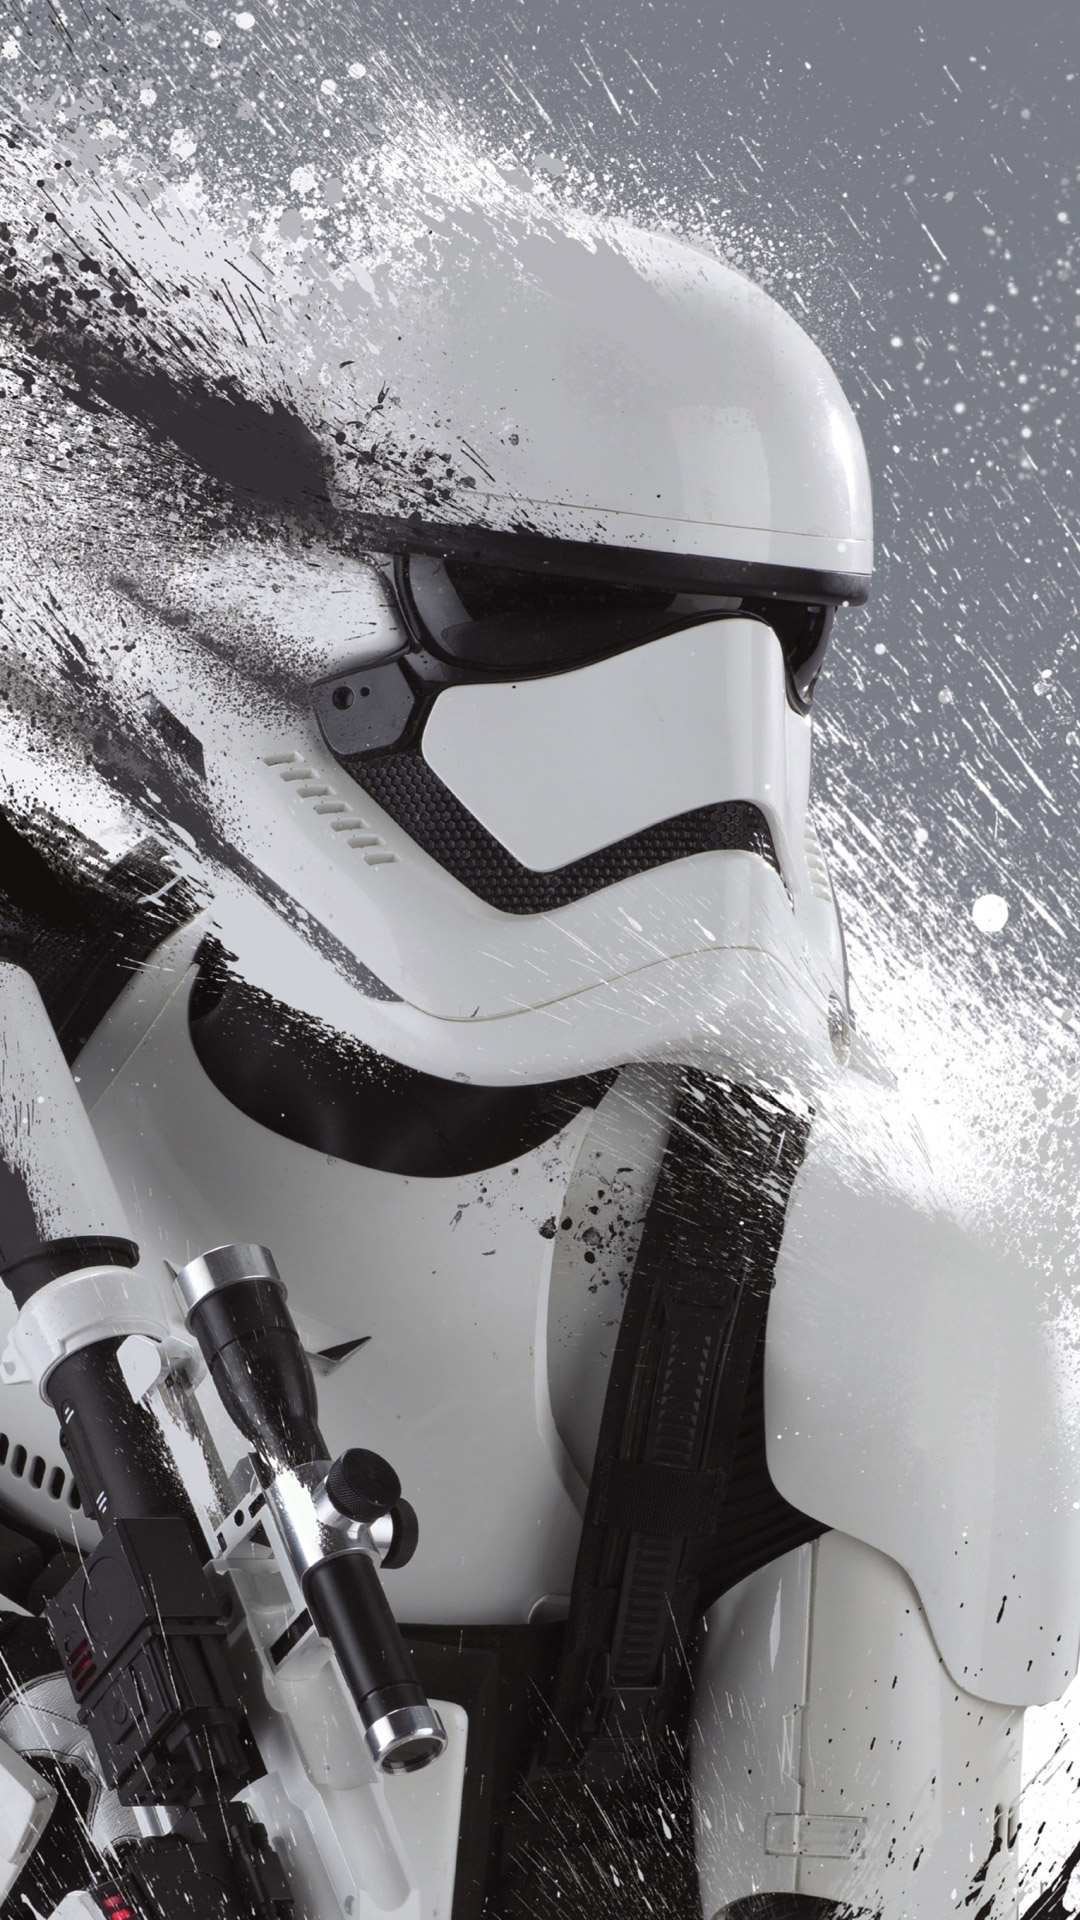 Star-Wars-The-Force-Awakens-Wallpaper-iDownloadBlog-Stormtrooper-Blast